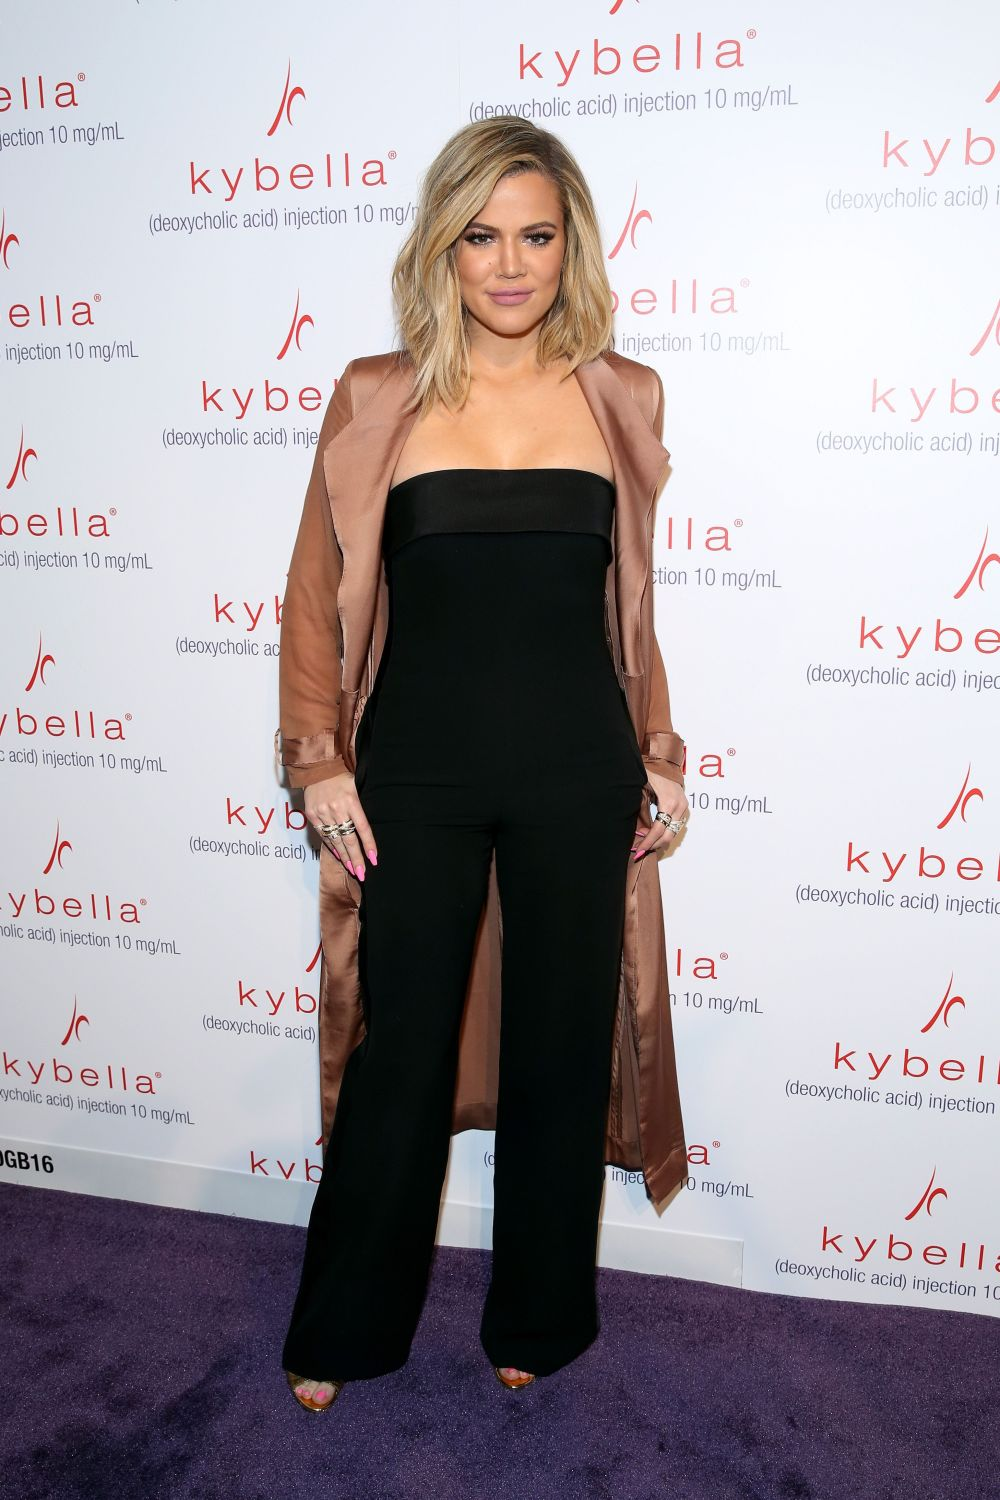 At Allergan'sKybella event at IAC Building in New York City.